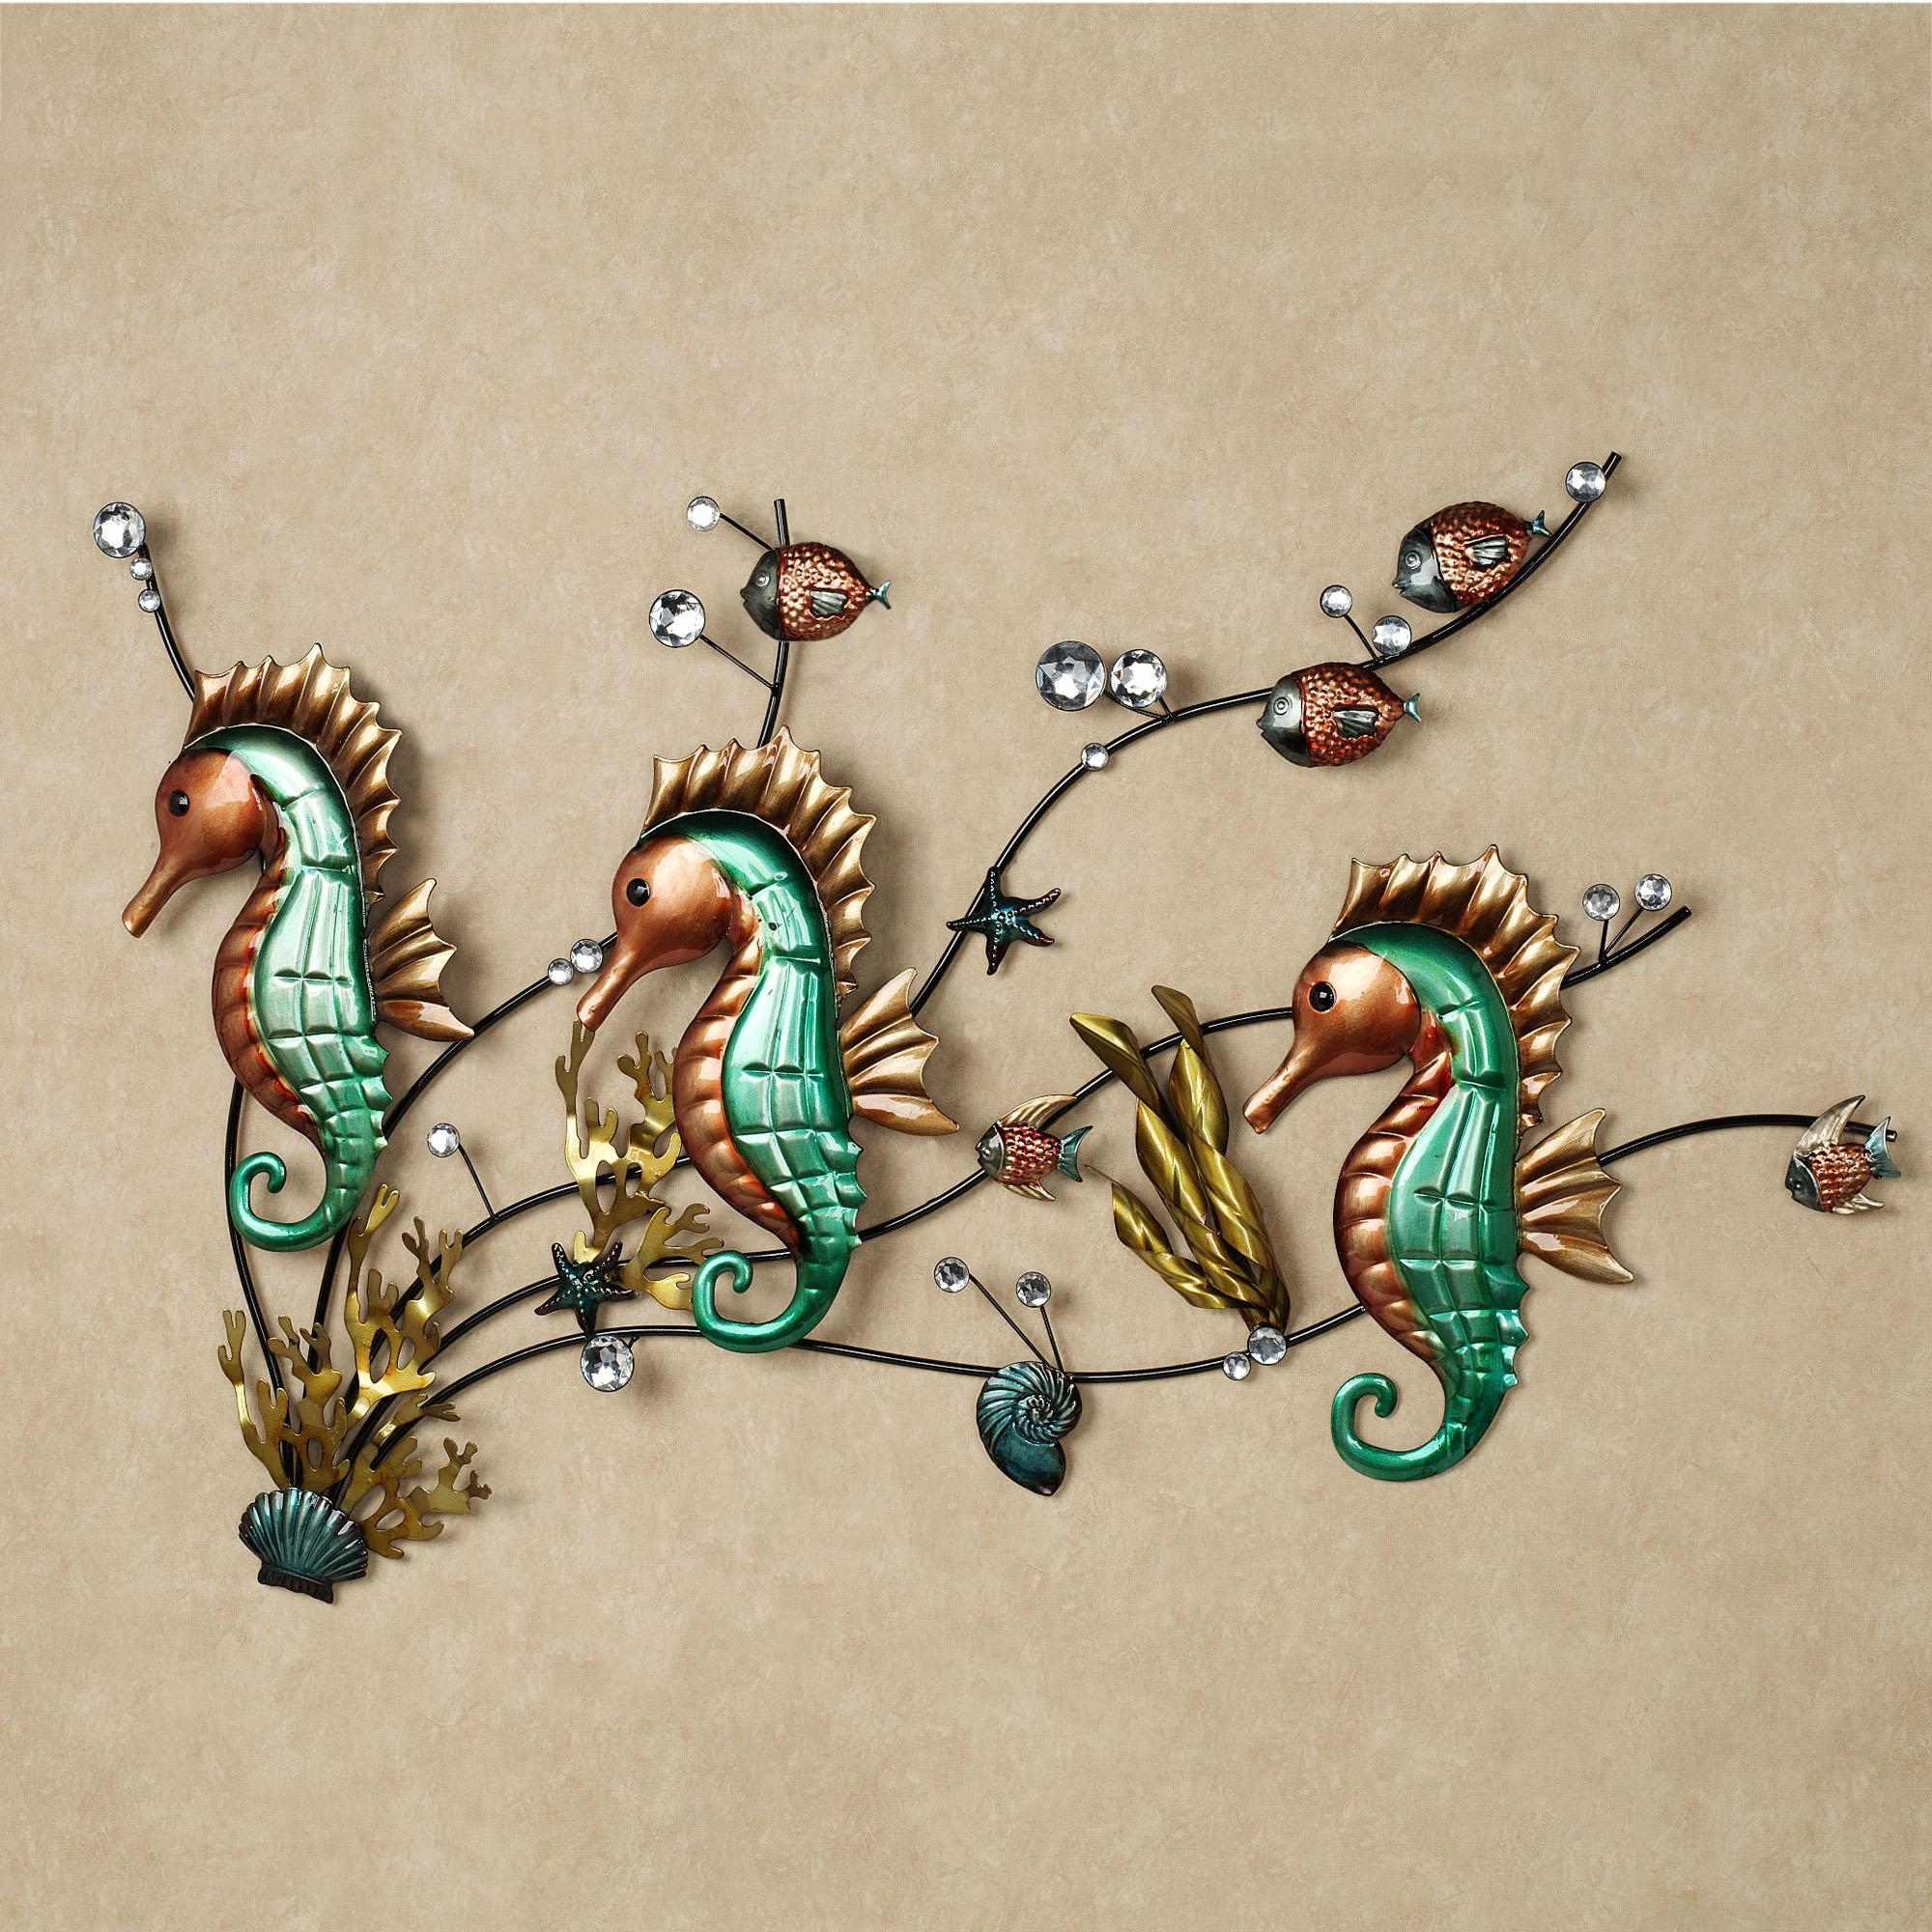 Metal Seahorse Wall Decor : Seahorse Wall Decor A Baby's Bedroom With Sea Horse Wall Art (View 7 of 20)